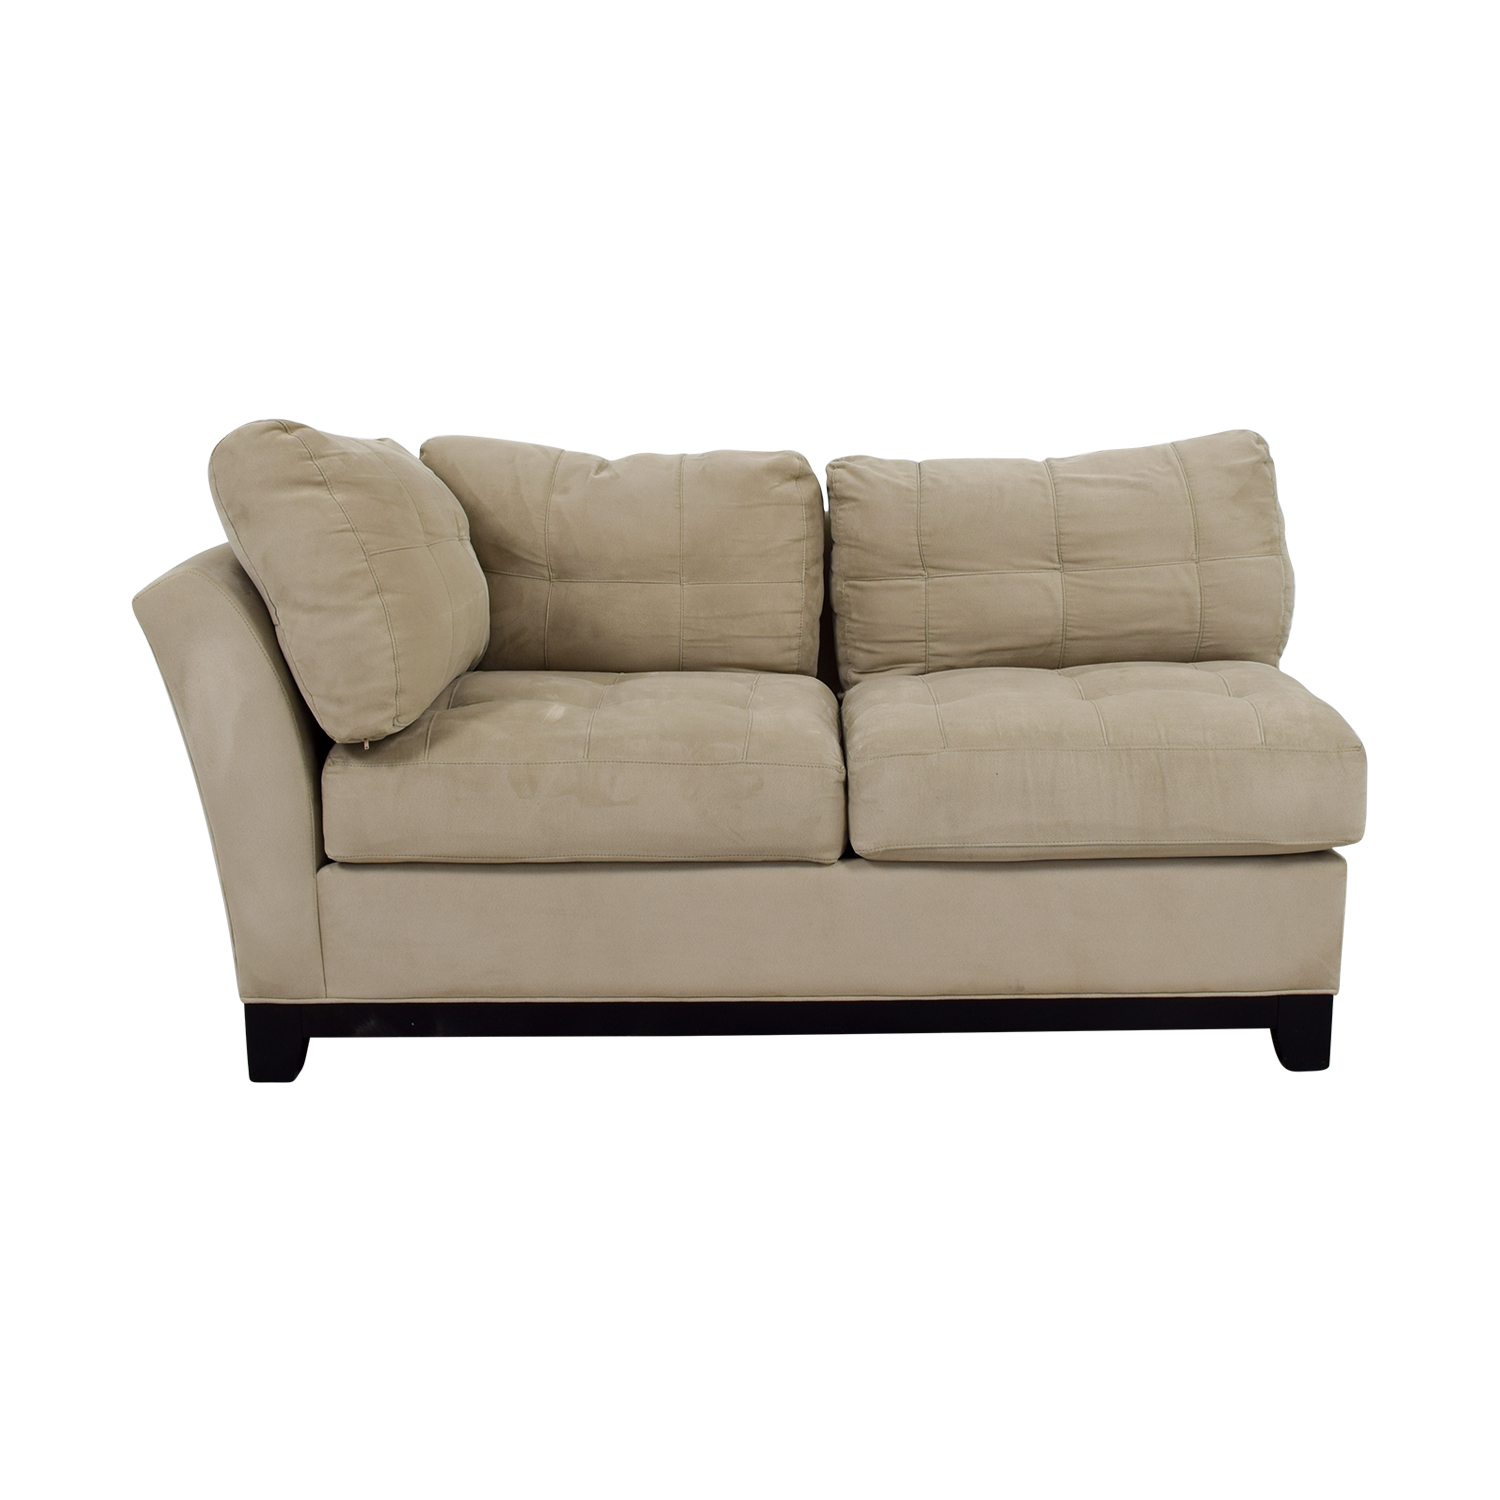 Raymour & Flanigan Grey Microfiber Loveseat sale